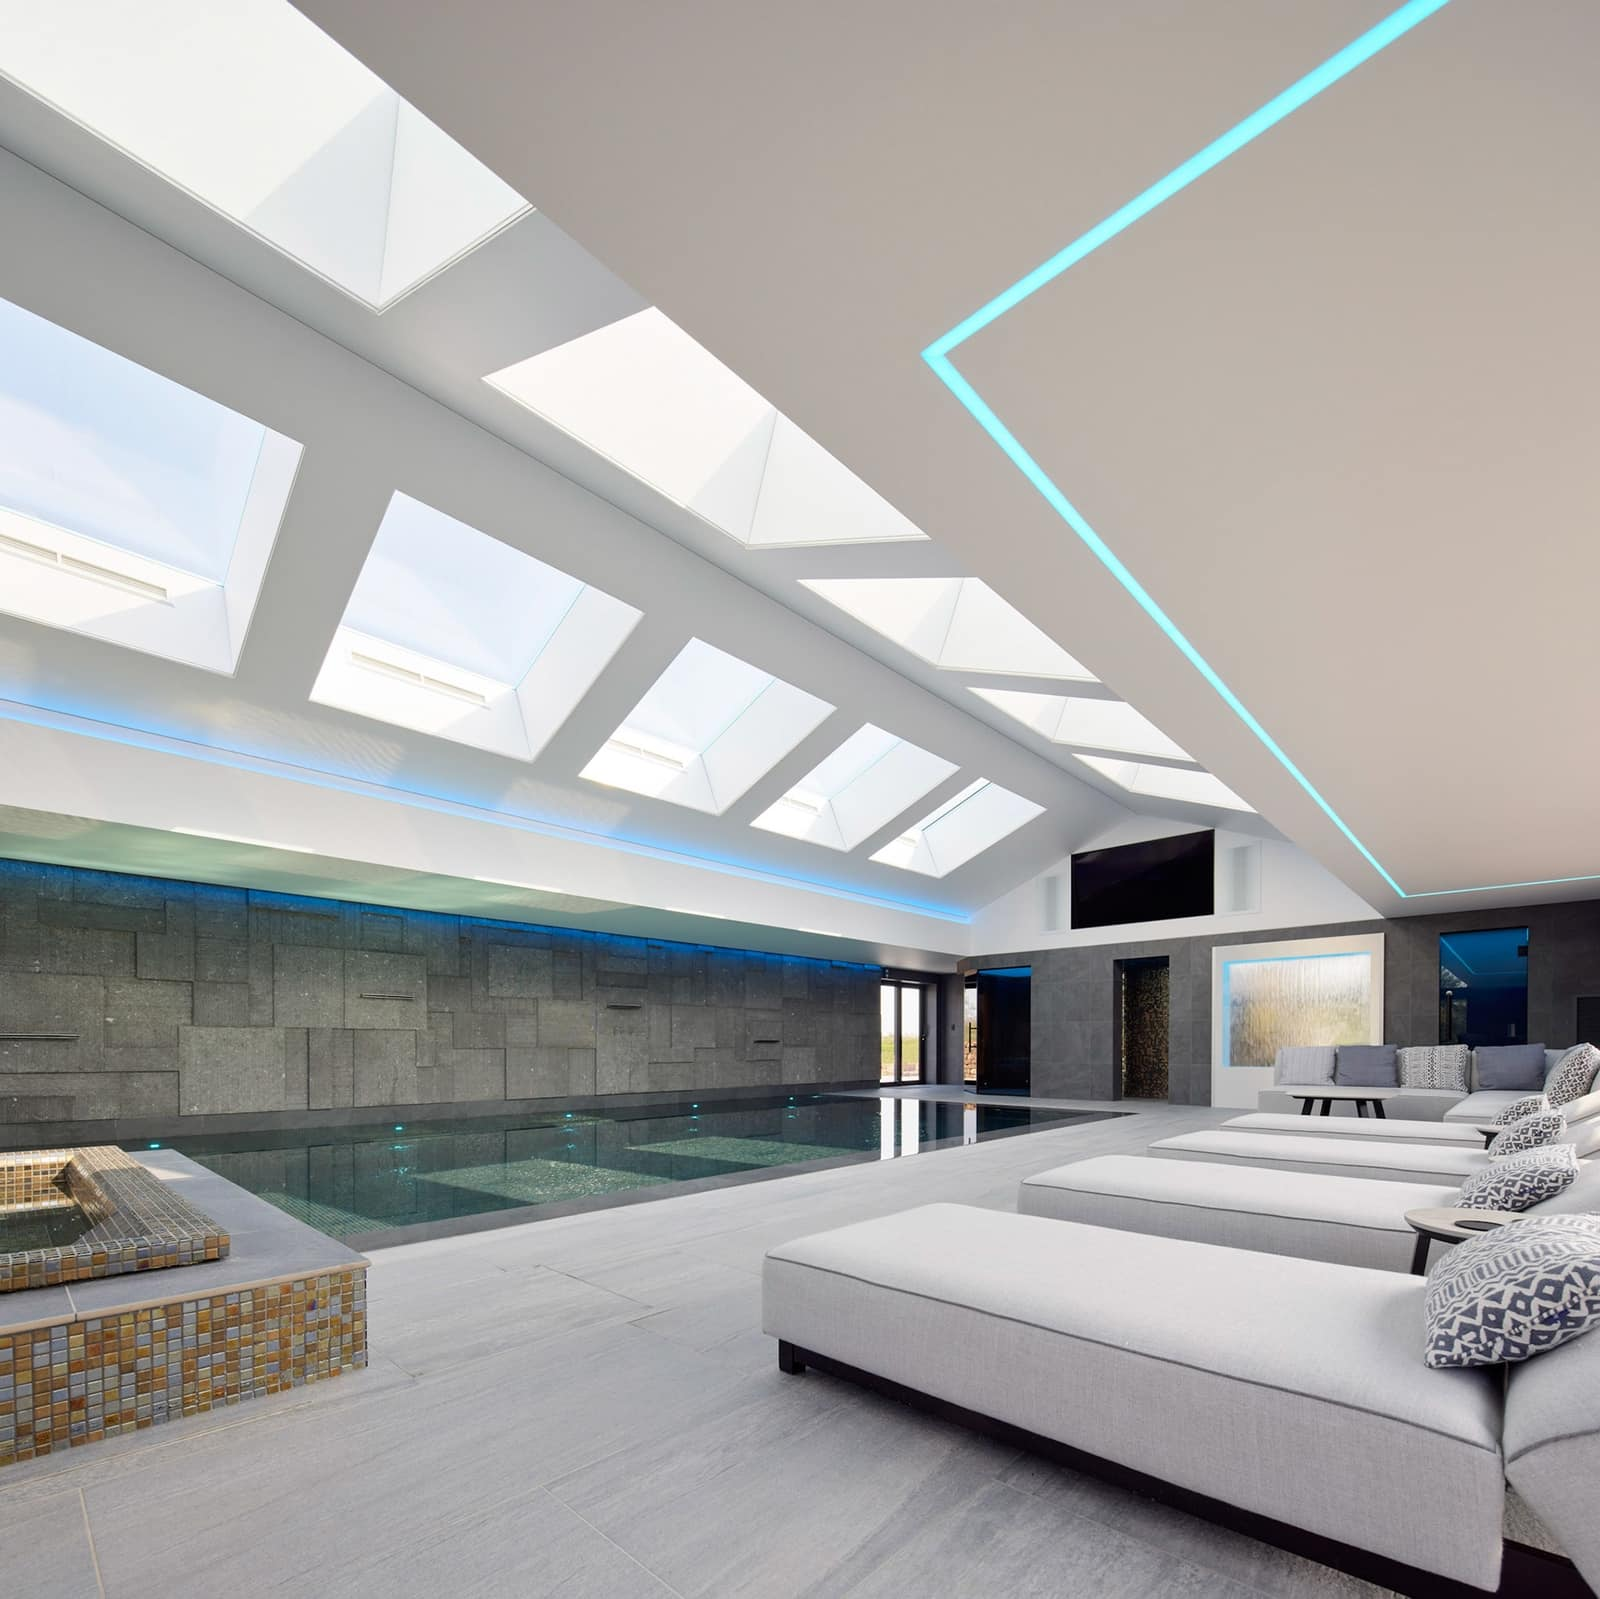 Architectural Photography Interior image of High End Pool in a private house